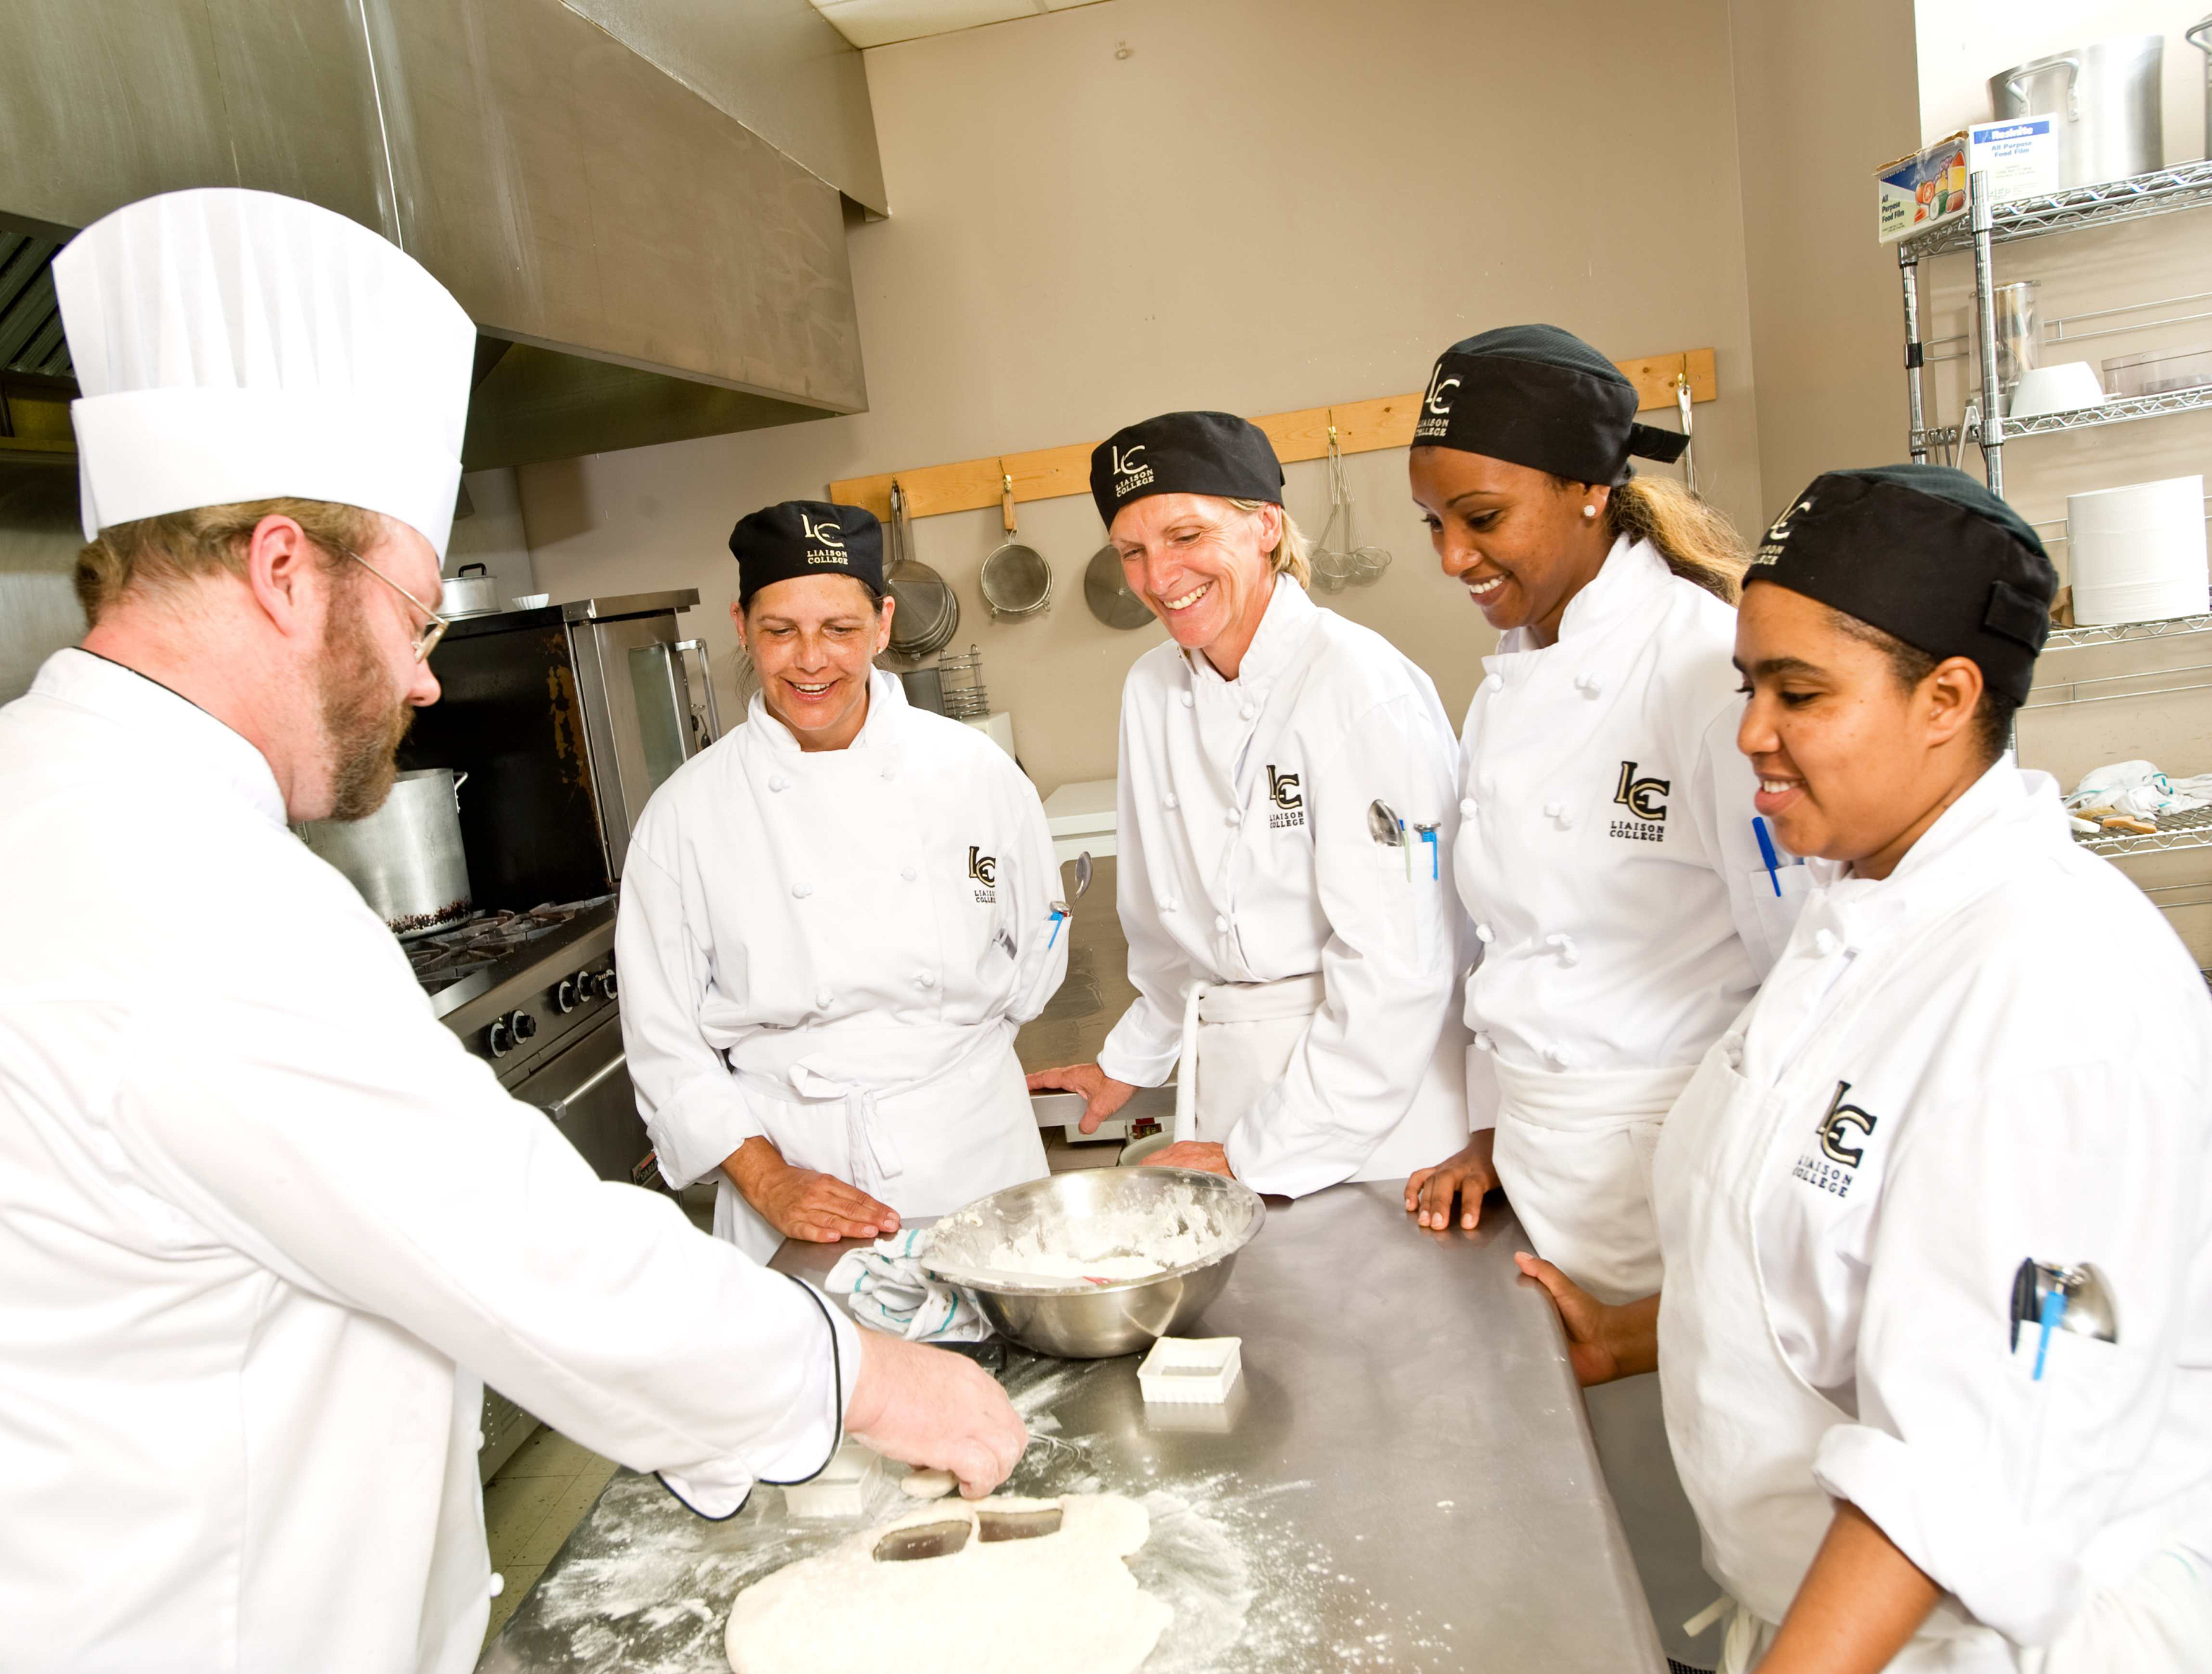 Chef School Brantford